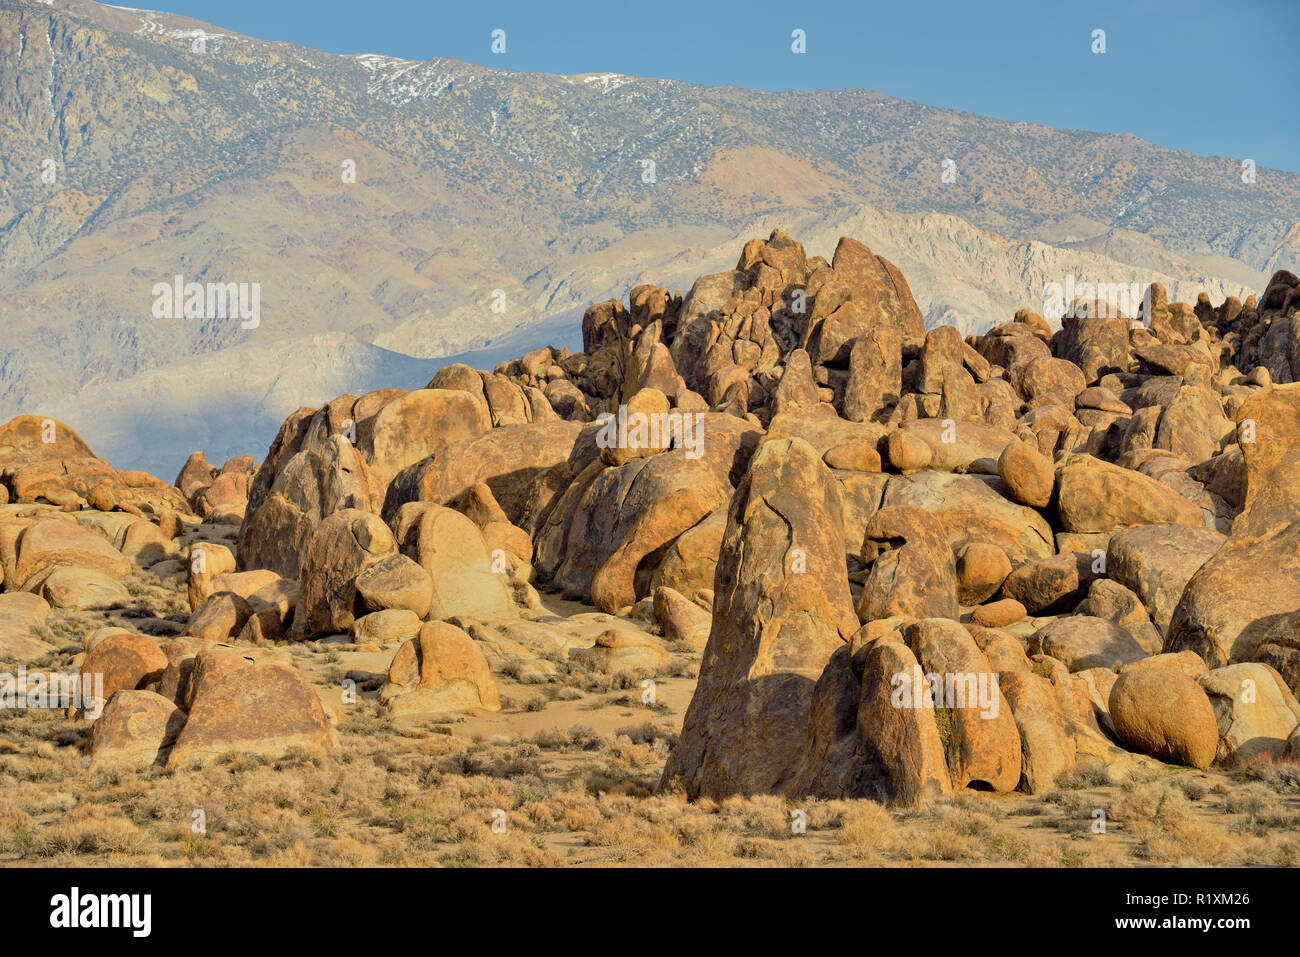 Biotite monzogranite boulders in the Alabama Hills, BLM Alabama Hills Recreation Area, Lone Pine, California, USA - Stock Image